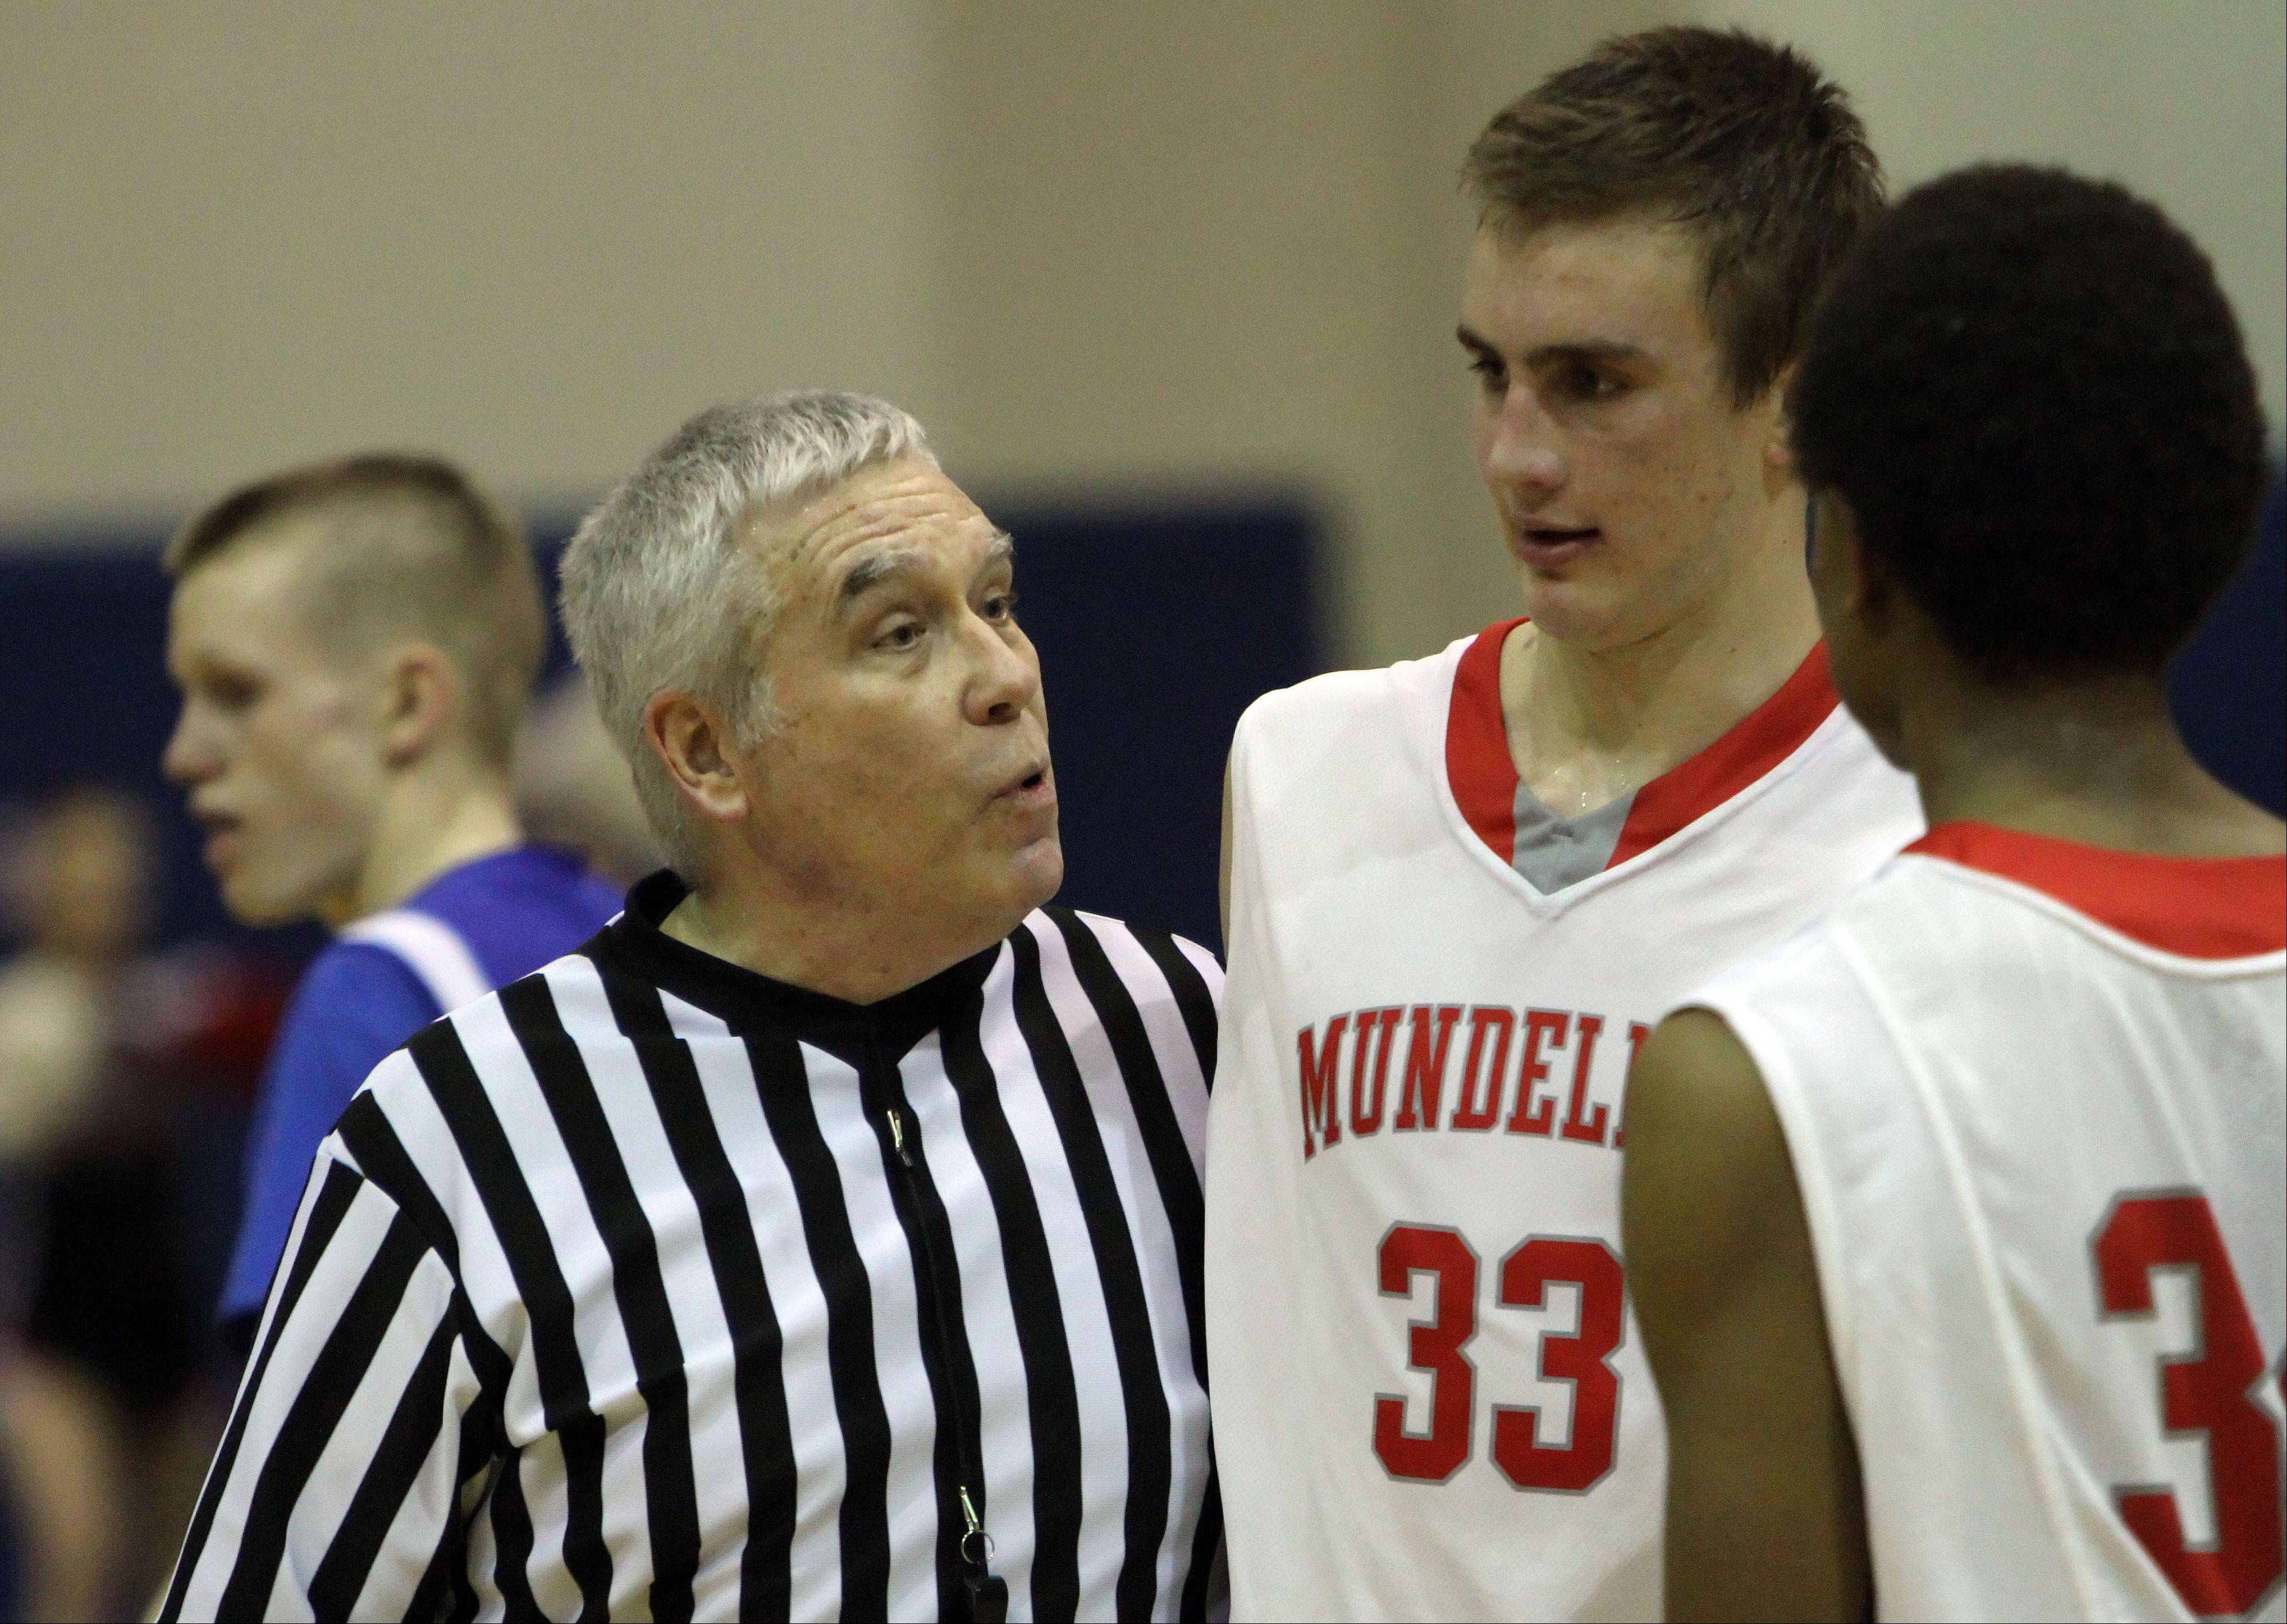 Images from the Mundelein vs. Lake Zurich Class 4A regional semifinal boys basketball game on Wednesday, Feb. 27 in Lake Zurich.